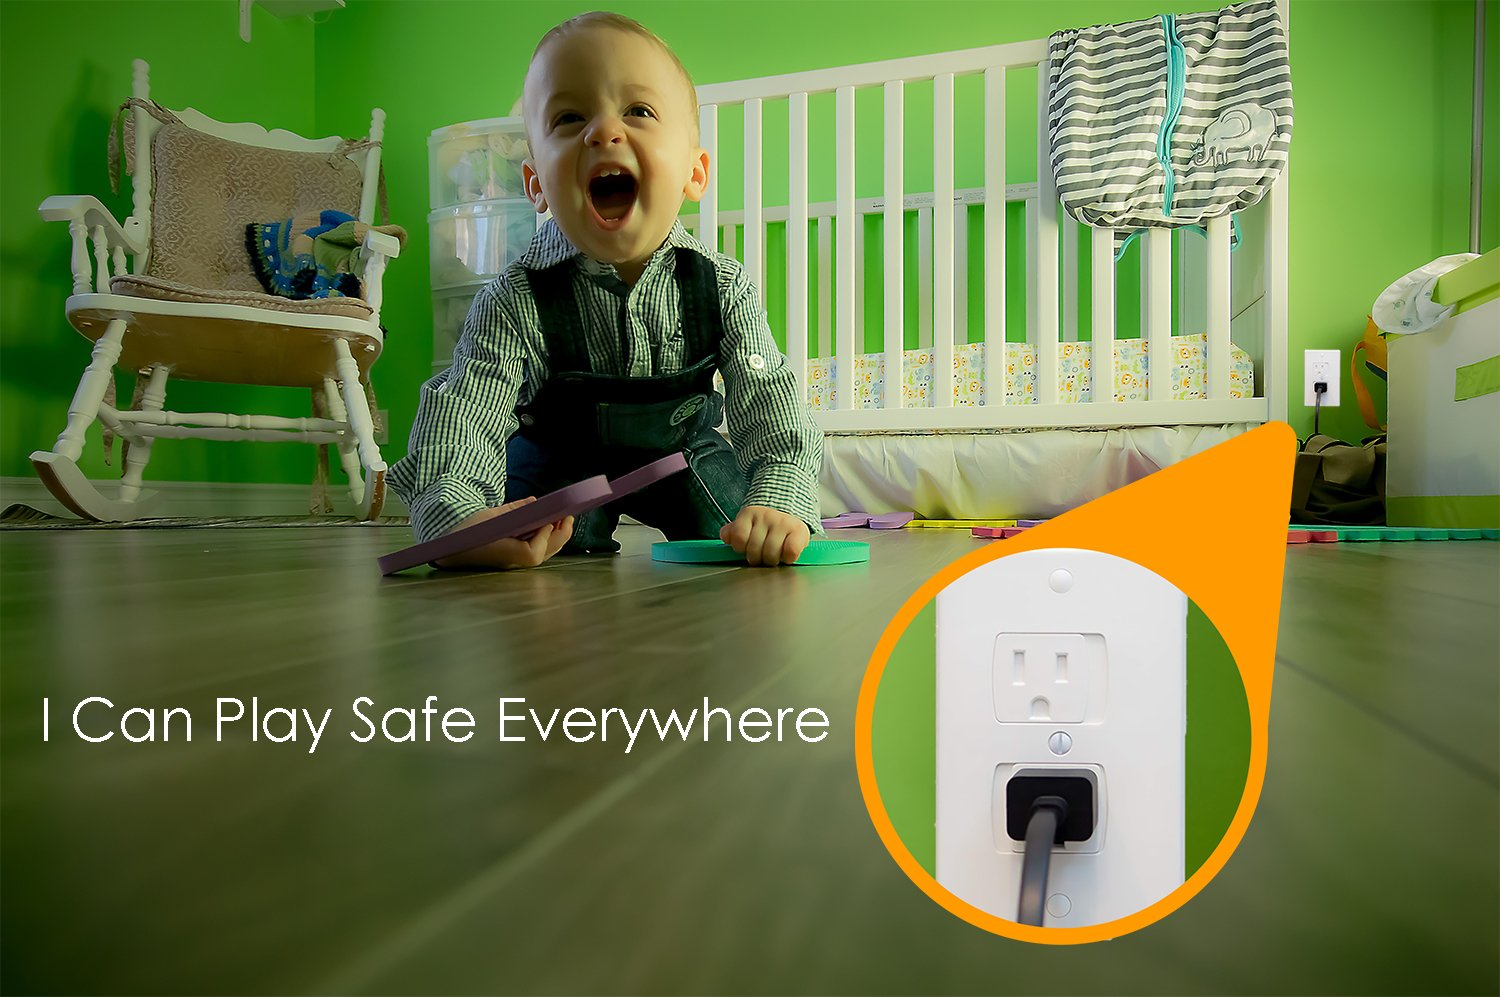 Self Closing Electrical Outlet Covers Child Proof Safety Universal Wall Socket Plugs Baby Dröm Automatic Sliding Cap Cover Standard Wall Outlet Plate 8 Pack